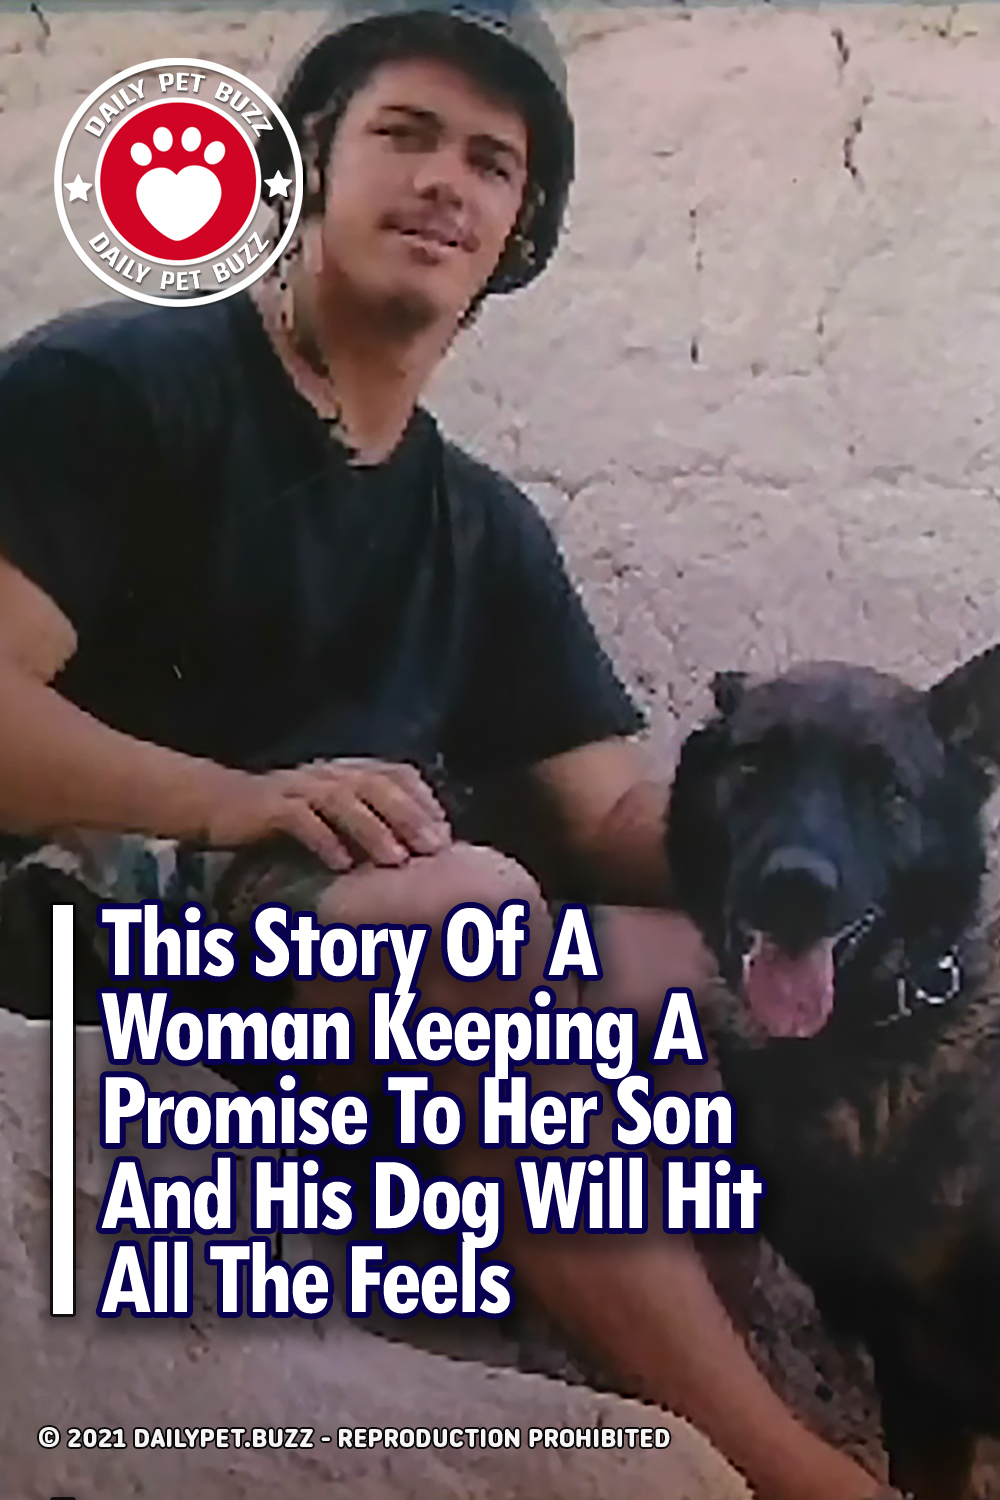 This Story Of A Woman Keeping A Promise To Her Son And His Dog Will Hit All The Feels